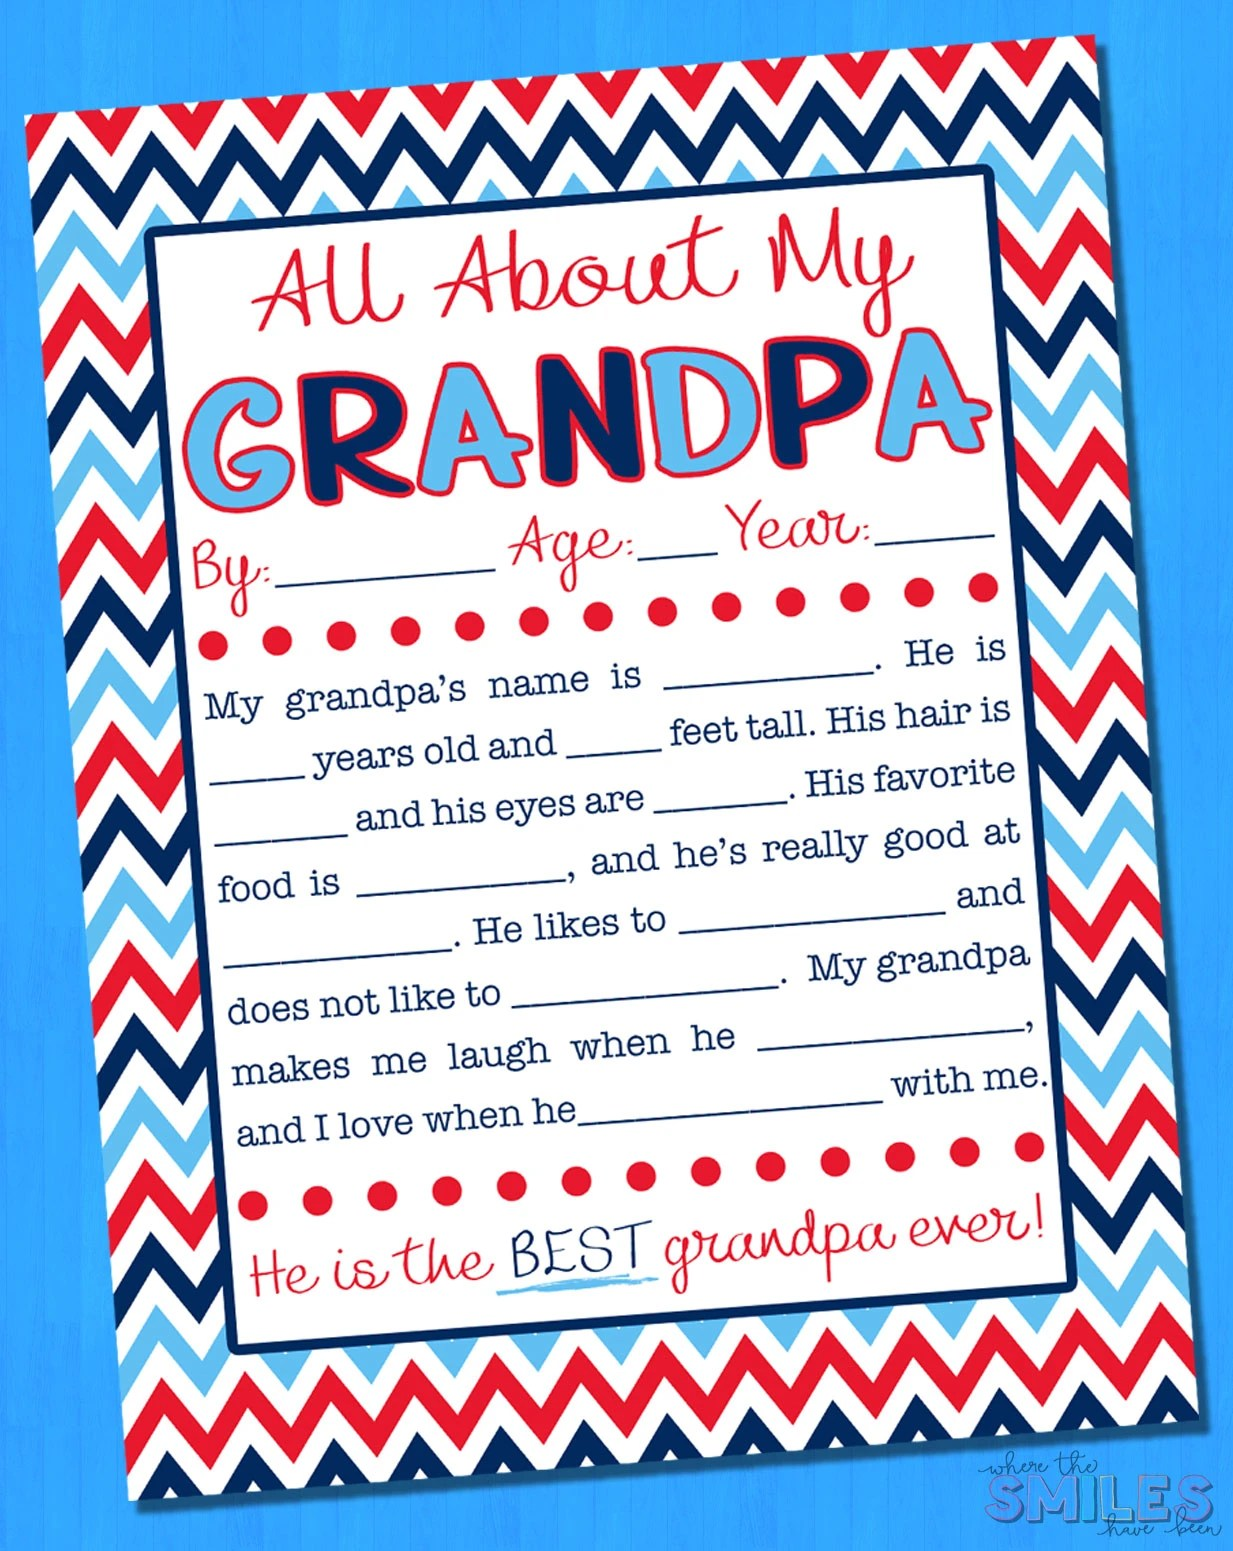 photograph relating to All About My Papa Printable titled All With regards to My Grandpa Job interview with No cost Printable 8